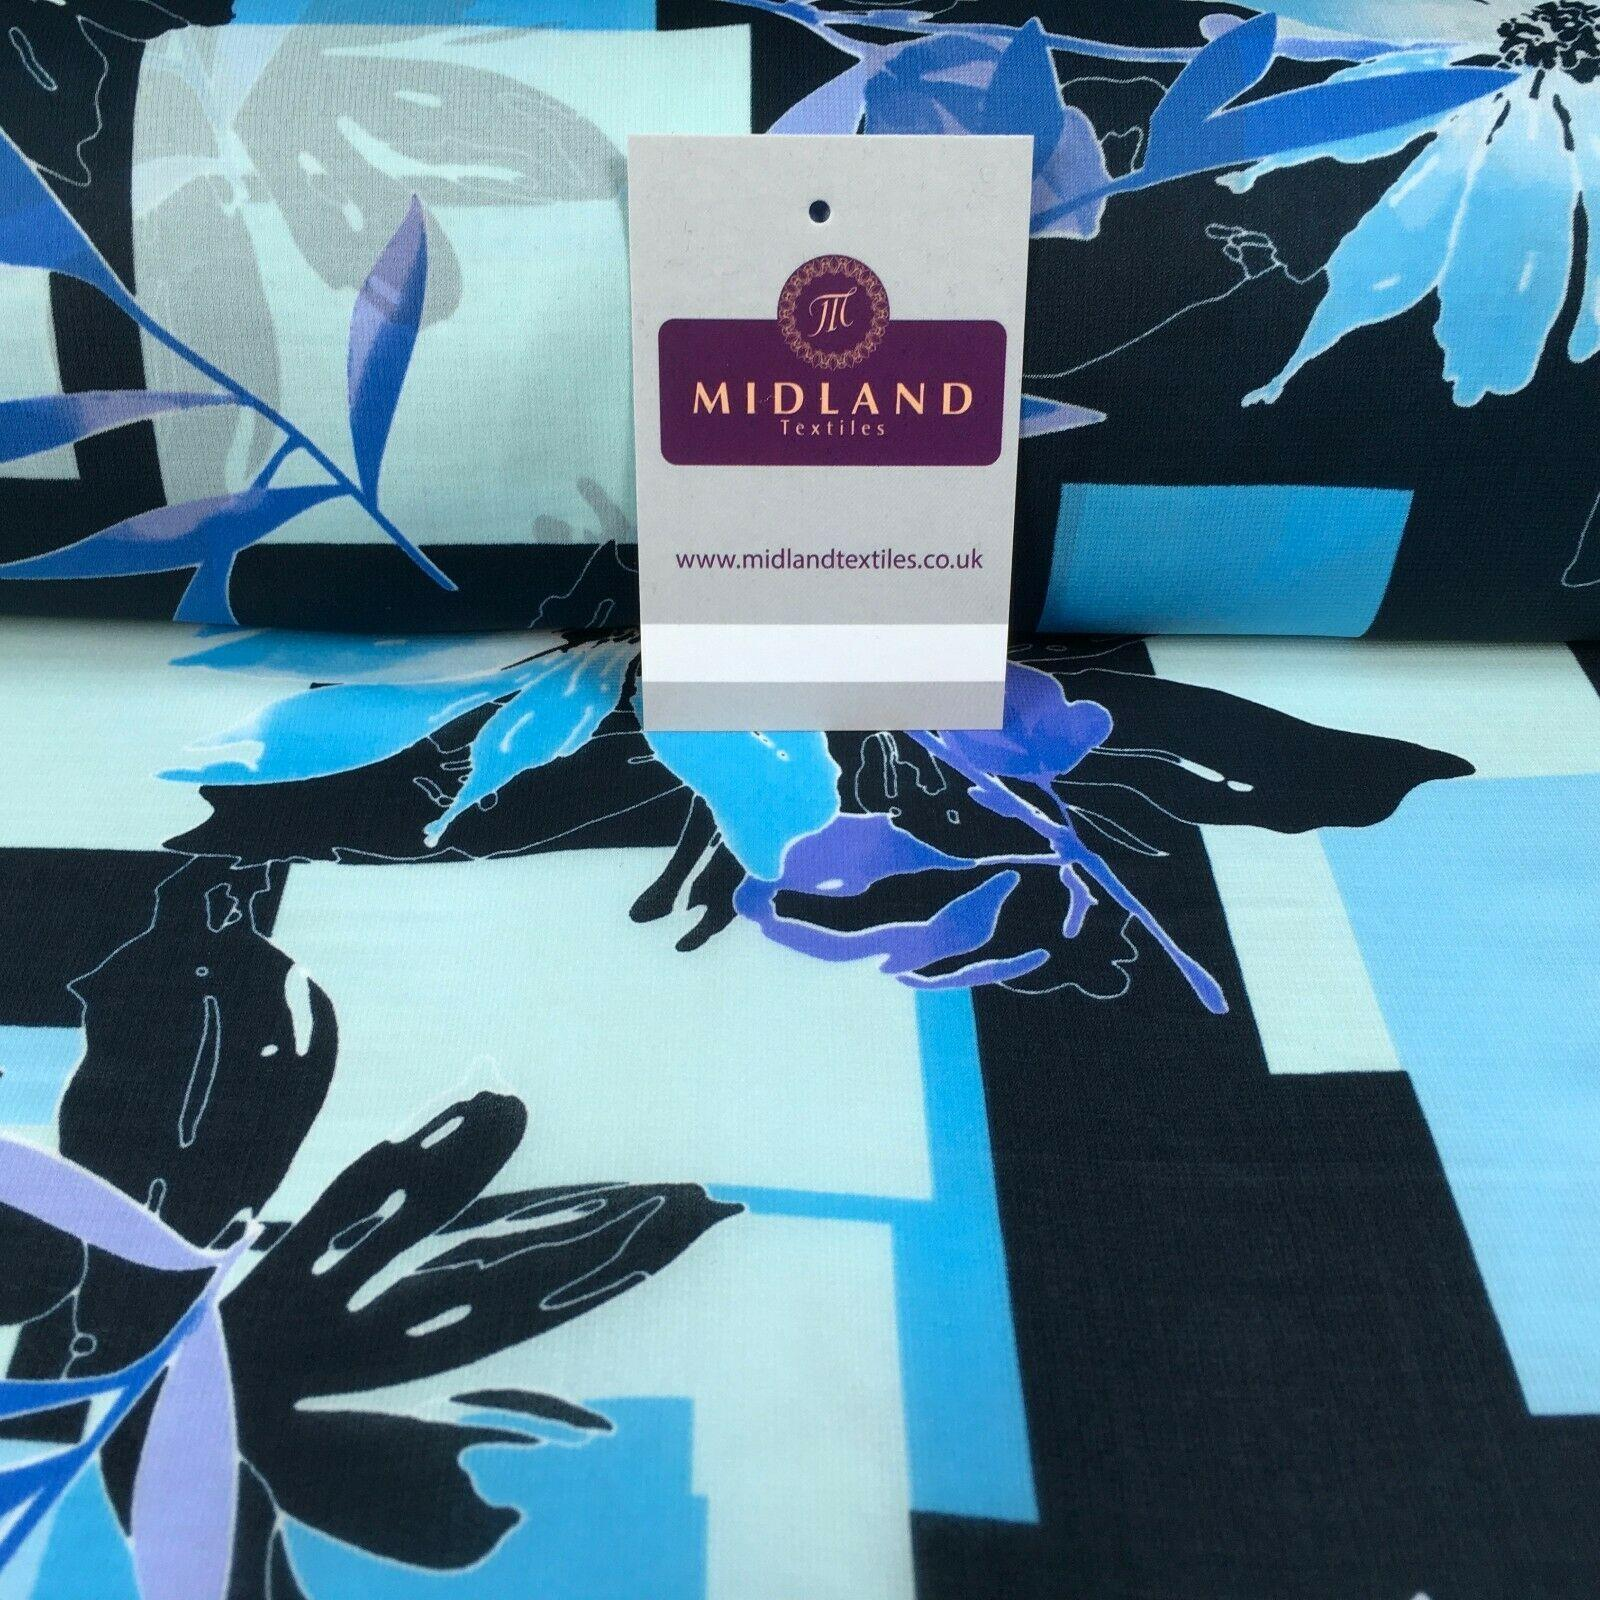 Blue's Floral Matt Satin Chiffon Dress Fabric 150 cm M145-79 Mtex